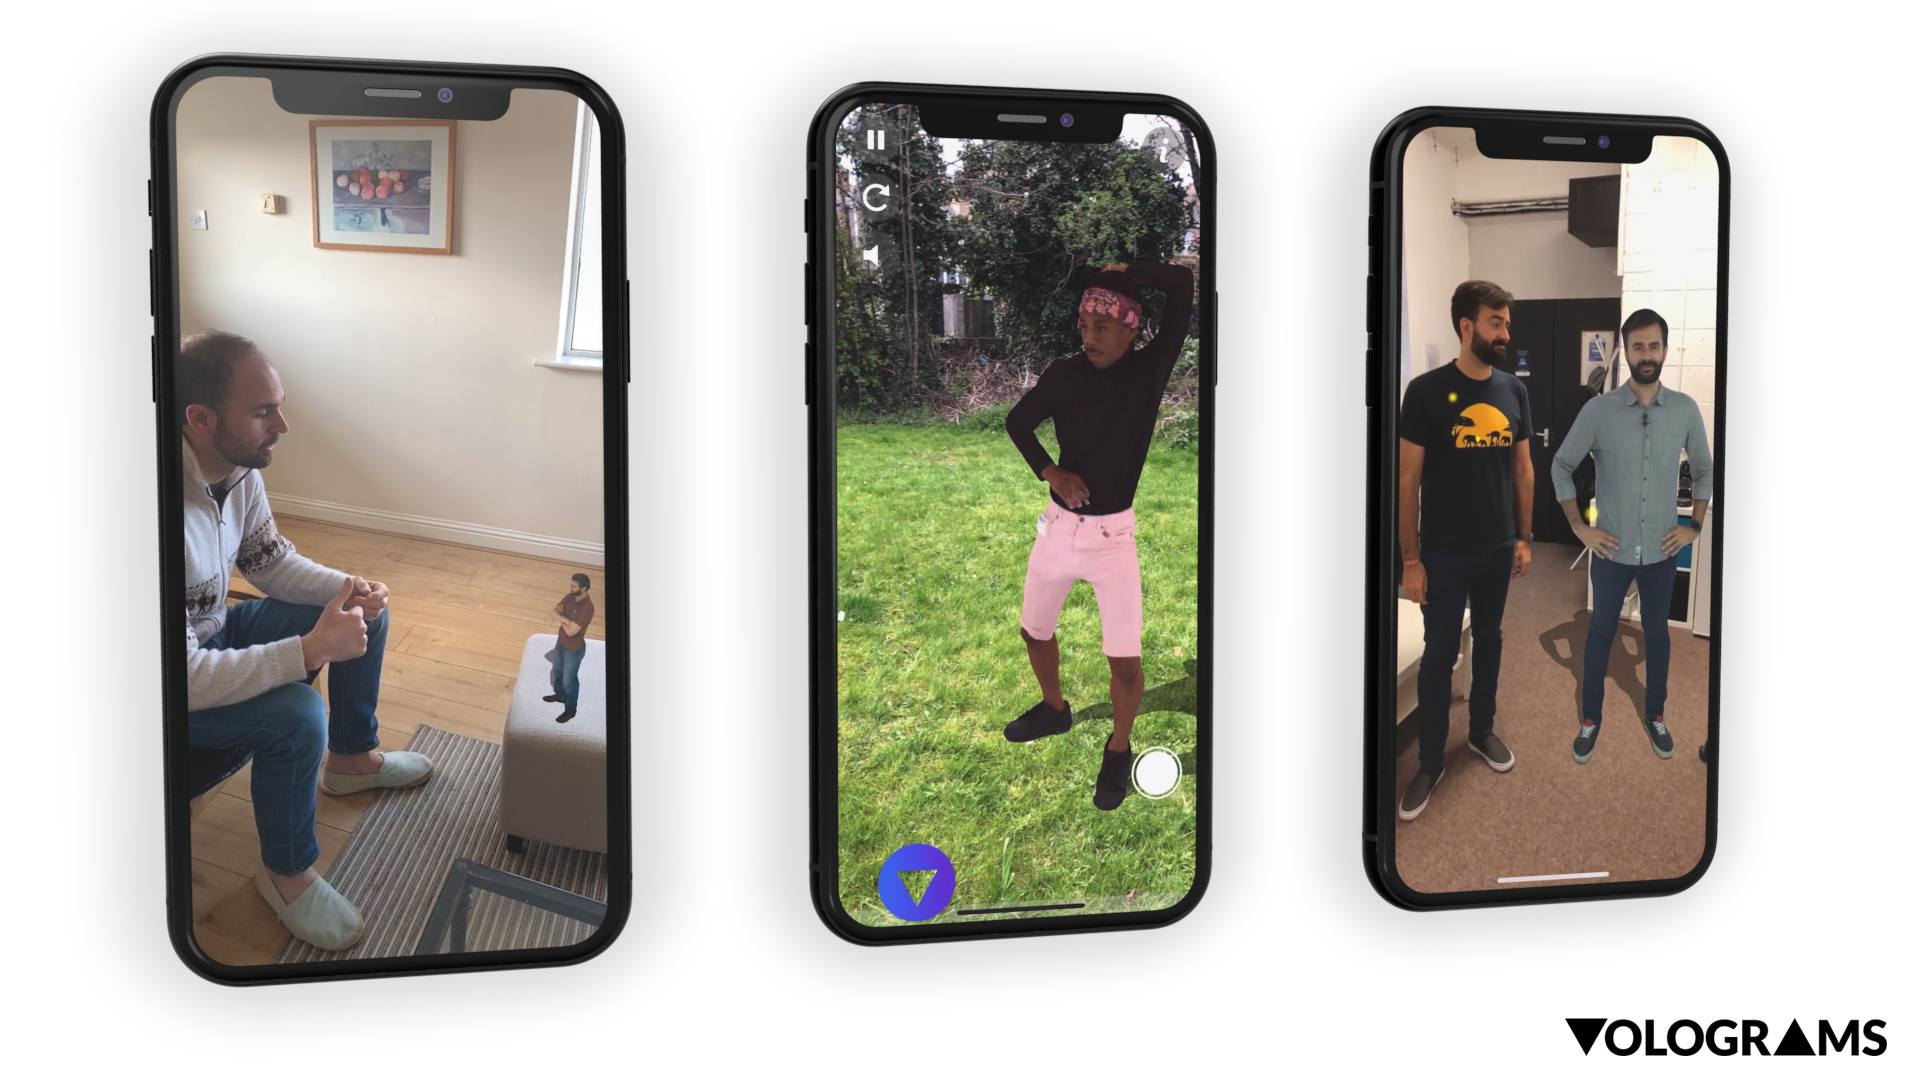 Three iPhone screens displaying Volograms of people inserted into different scenarios.